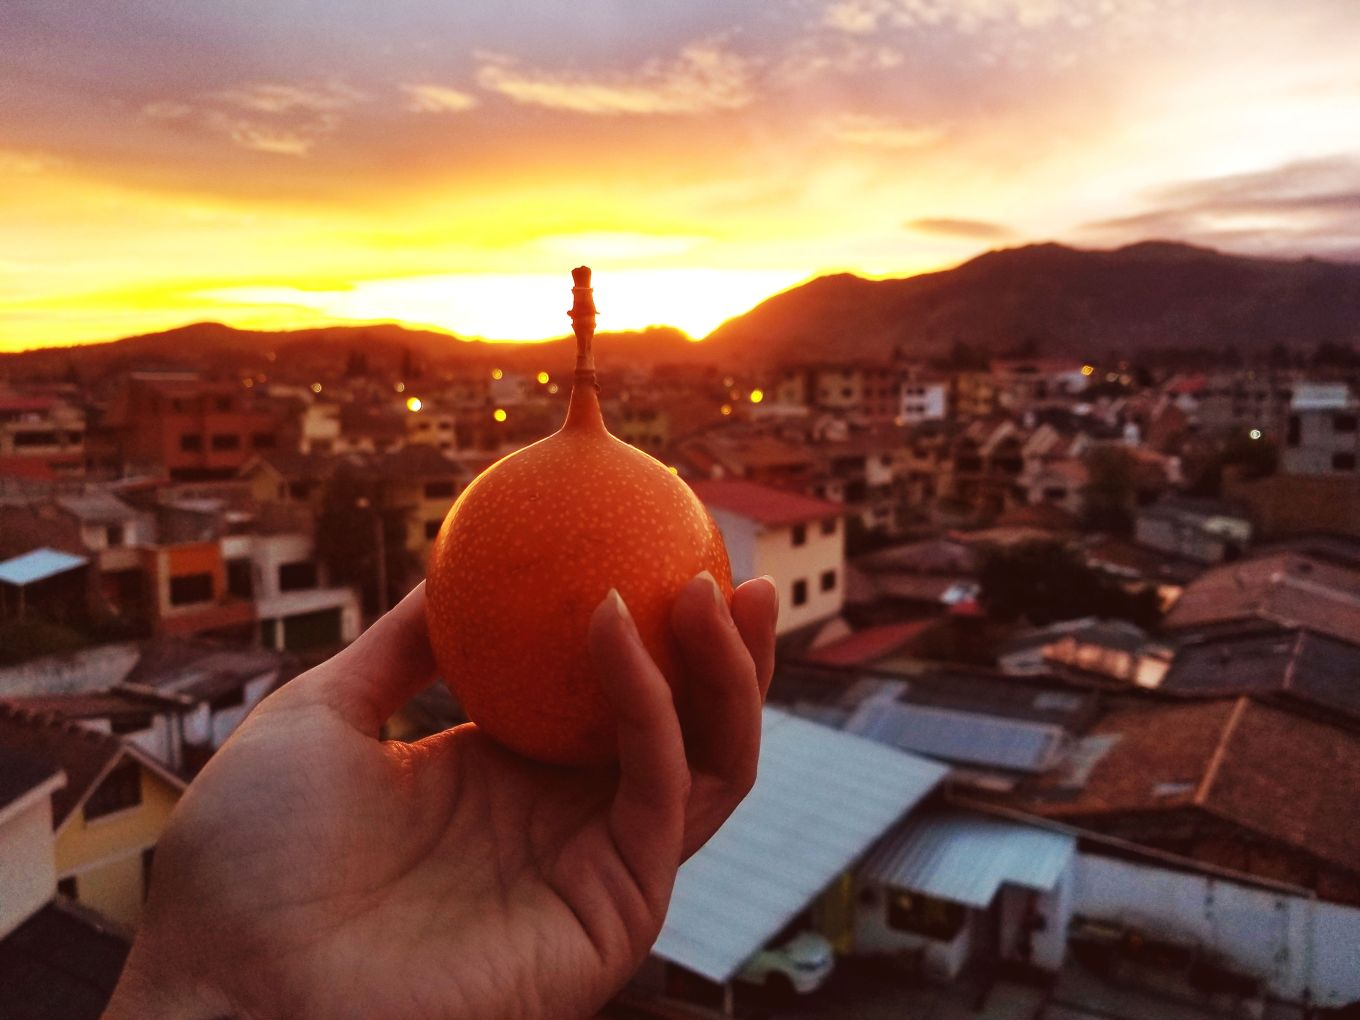 Granadilla And Sunset Cuenca, Ecuador